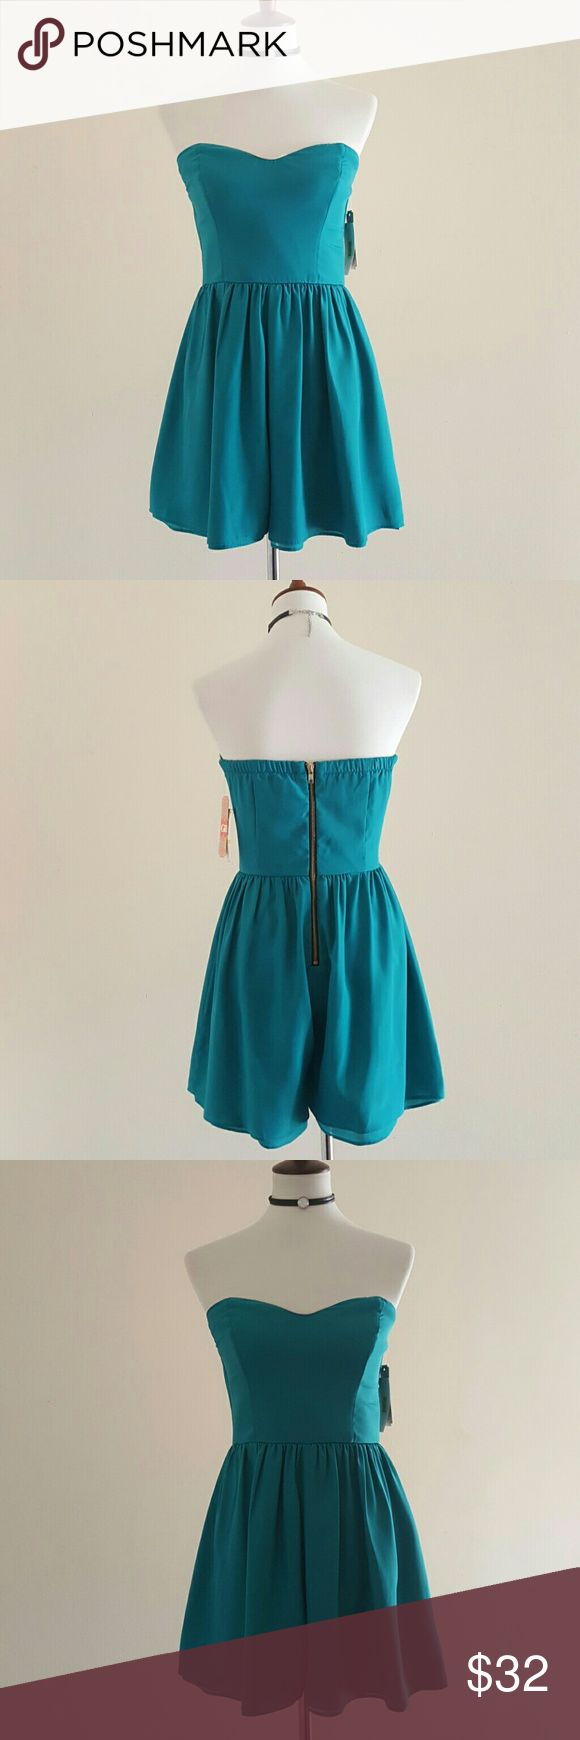 Gianni Bini Teal Strapless Romper Strapless romper w/ ivory lining on a sweetheart neckline. 25' in length from top to bottom hem.  Gold zipper in back. This is a size 7. Laying flat the waist measures 14'.  Super cute for a night ouT! 100% polyester Gianni Bini Pants Jumpsuits & Rompers